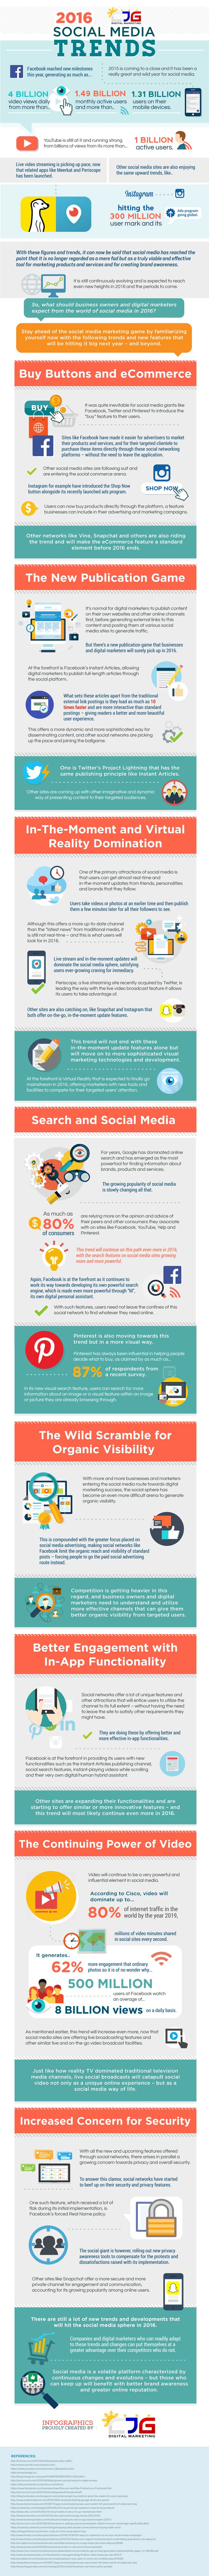 Looking for social media trends of this year! Have a glance to this #infographic #socialmedia